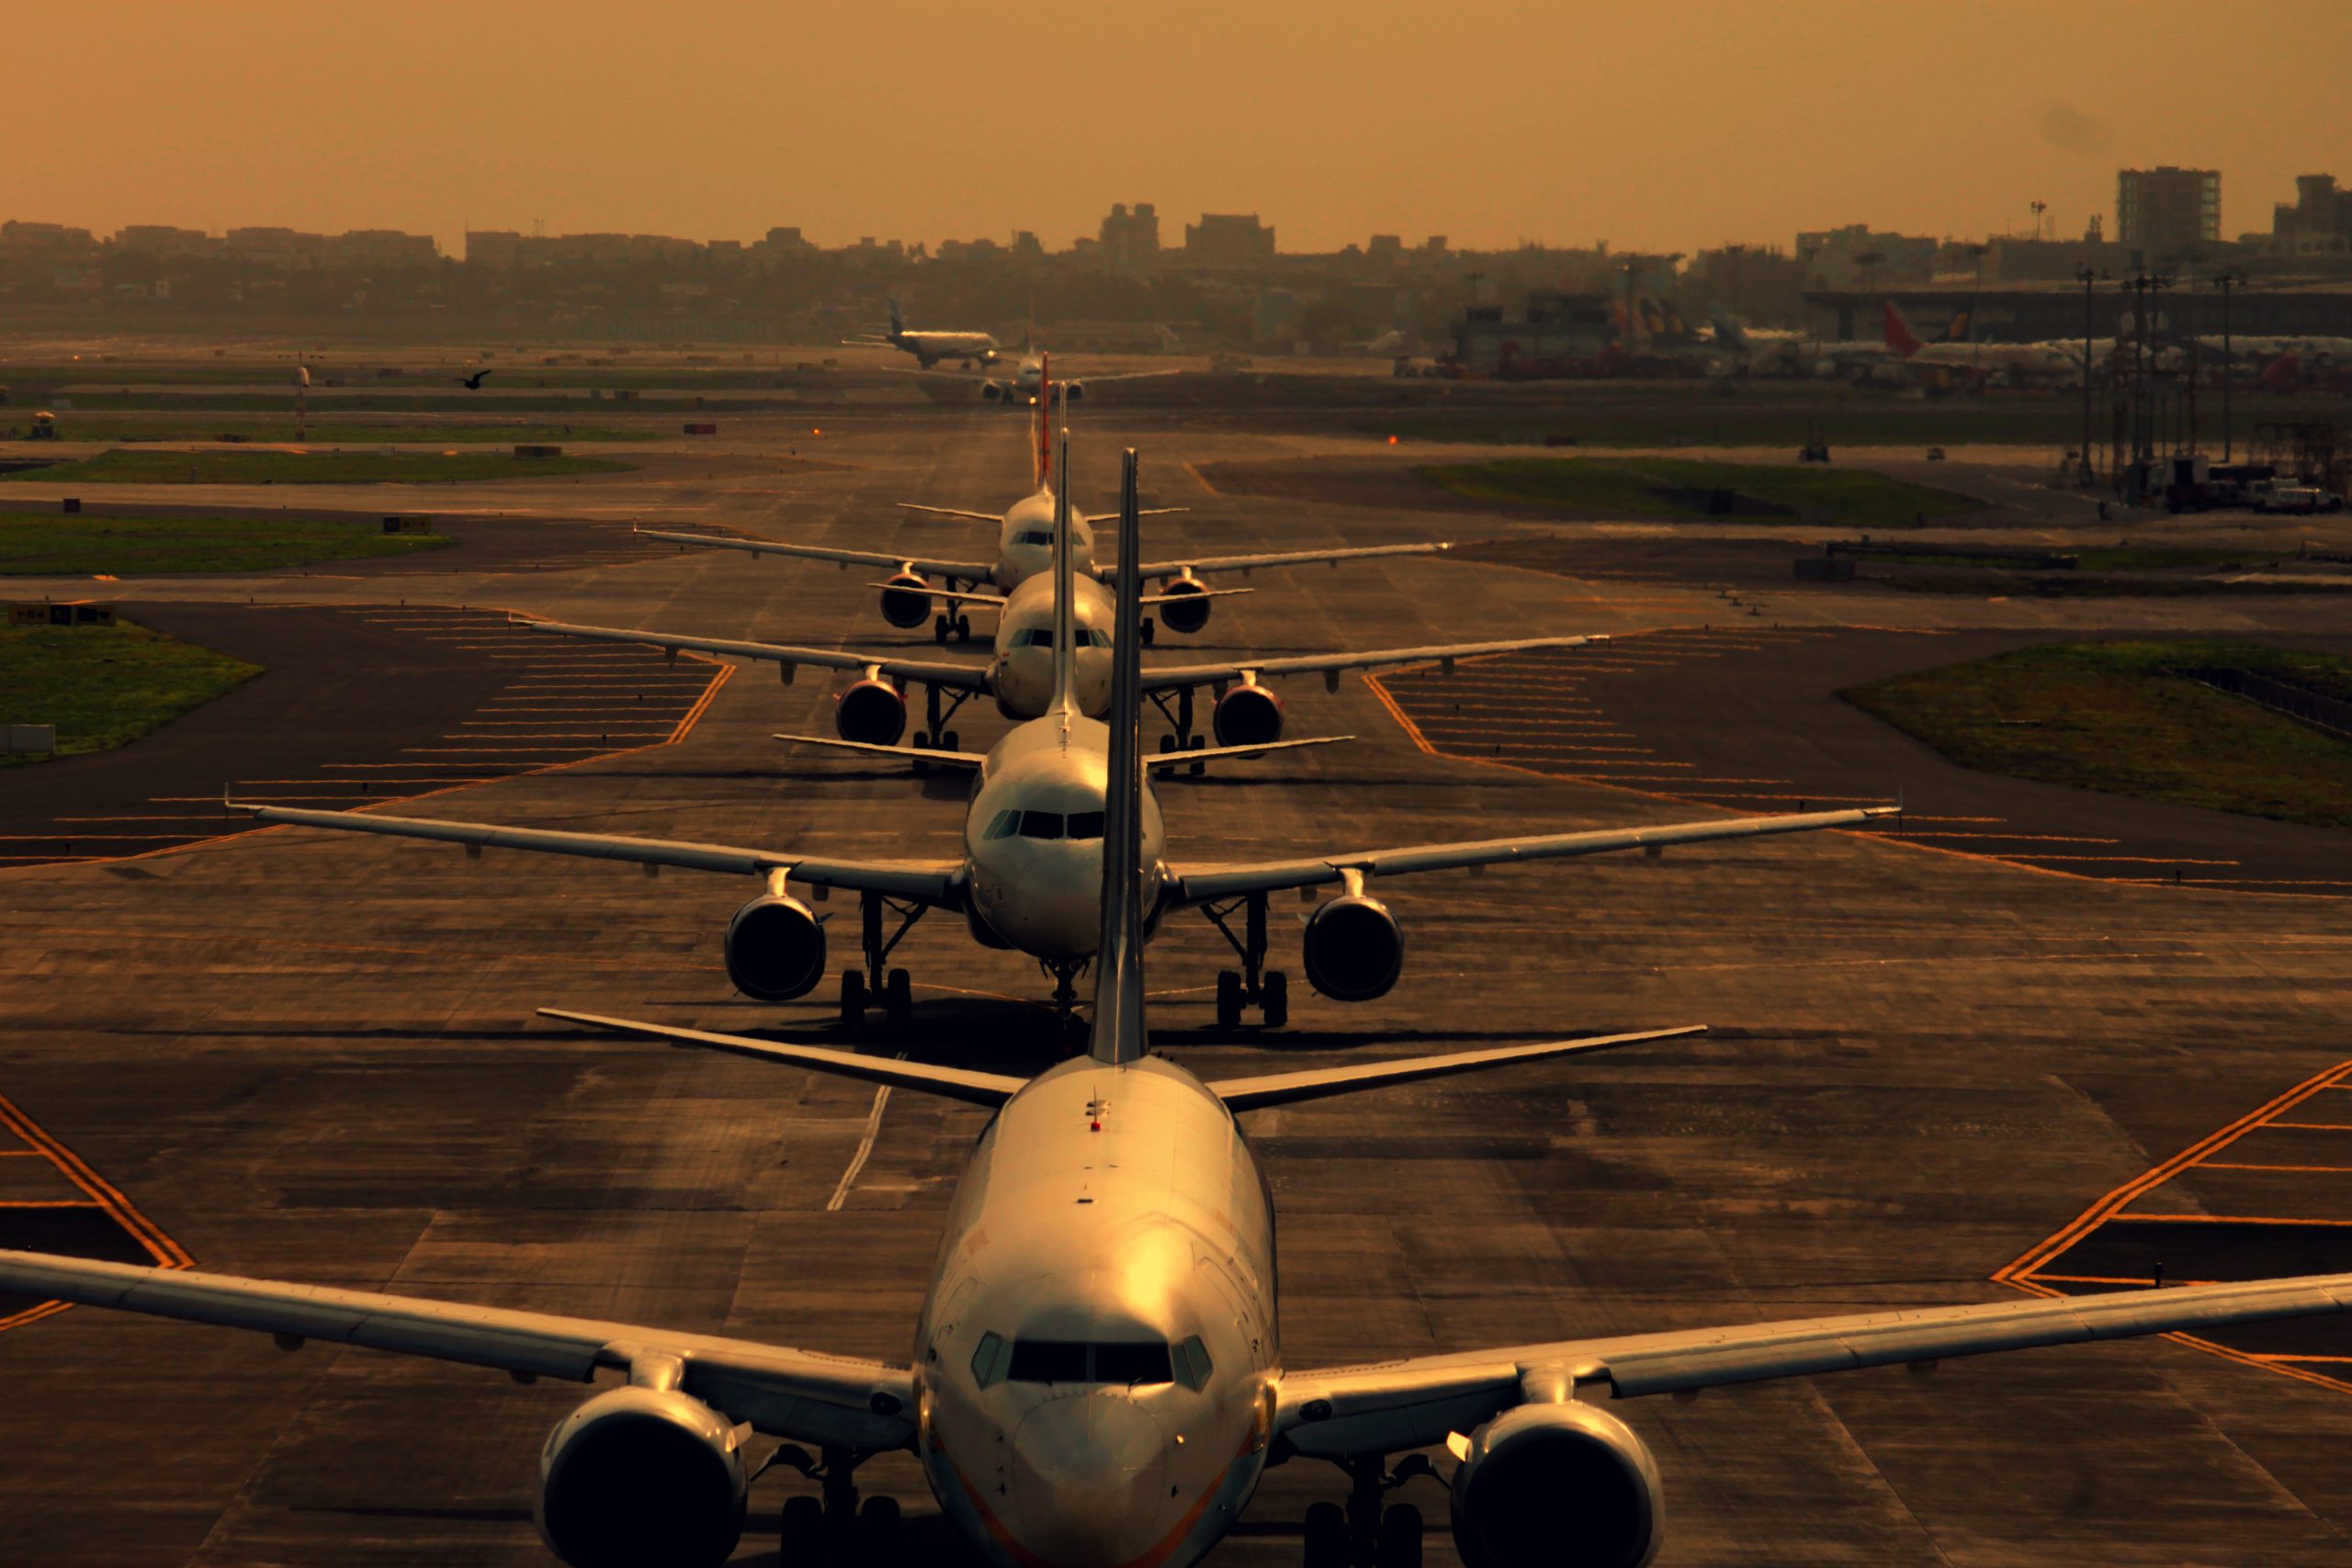 Queue to take-off: which airline companies will recover first after pandemic. Part 1